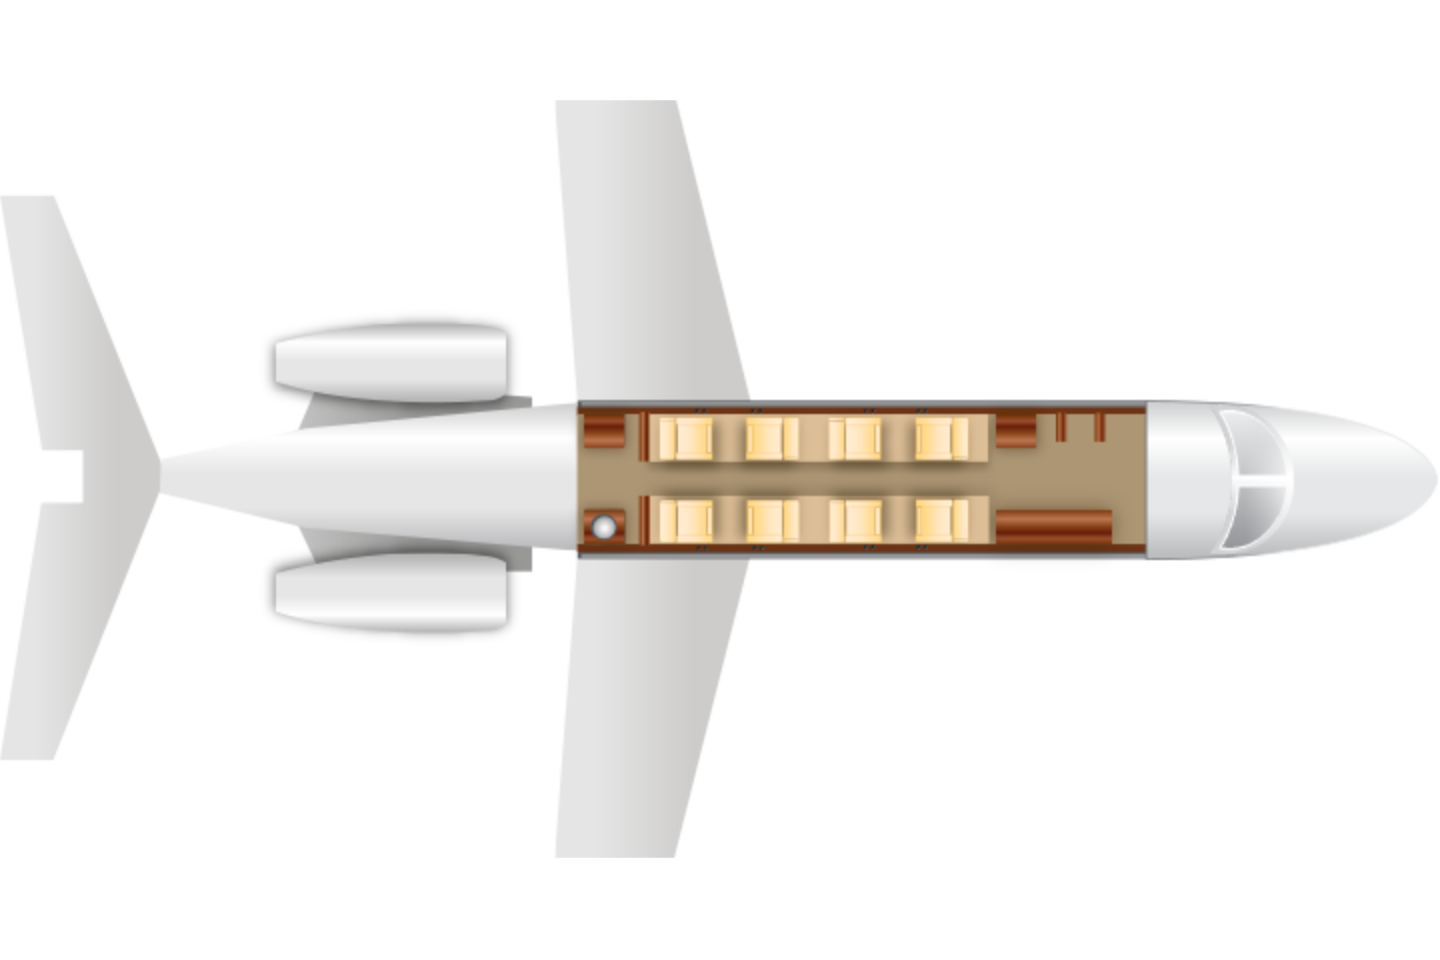 citation-x-transparent-1412619090.png Floor Plan View